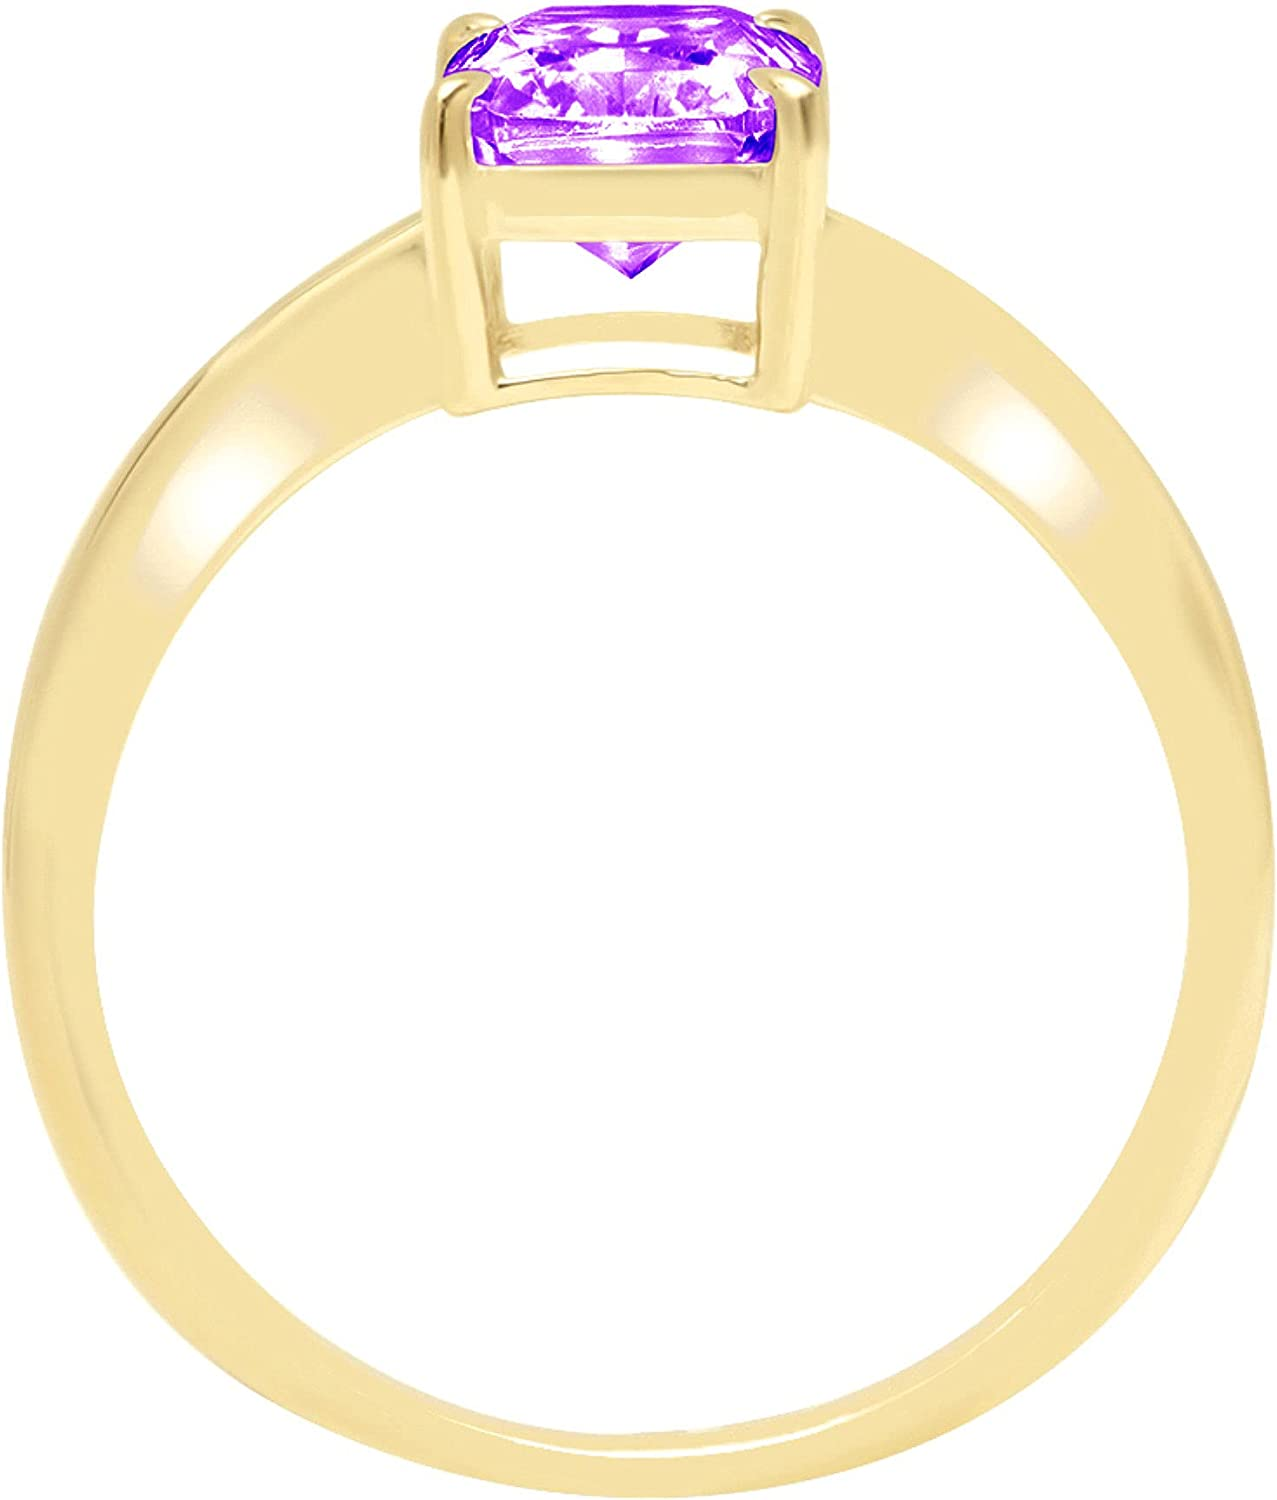 1.7ctBrilliant Radiant Cut Solitaire Natural Purple Amethyst Ideal VVS1 4-Prong Classic Designer Statement Ring Solid Real 14k Yellow Gold for Women